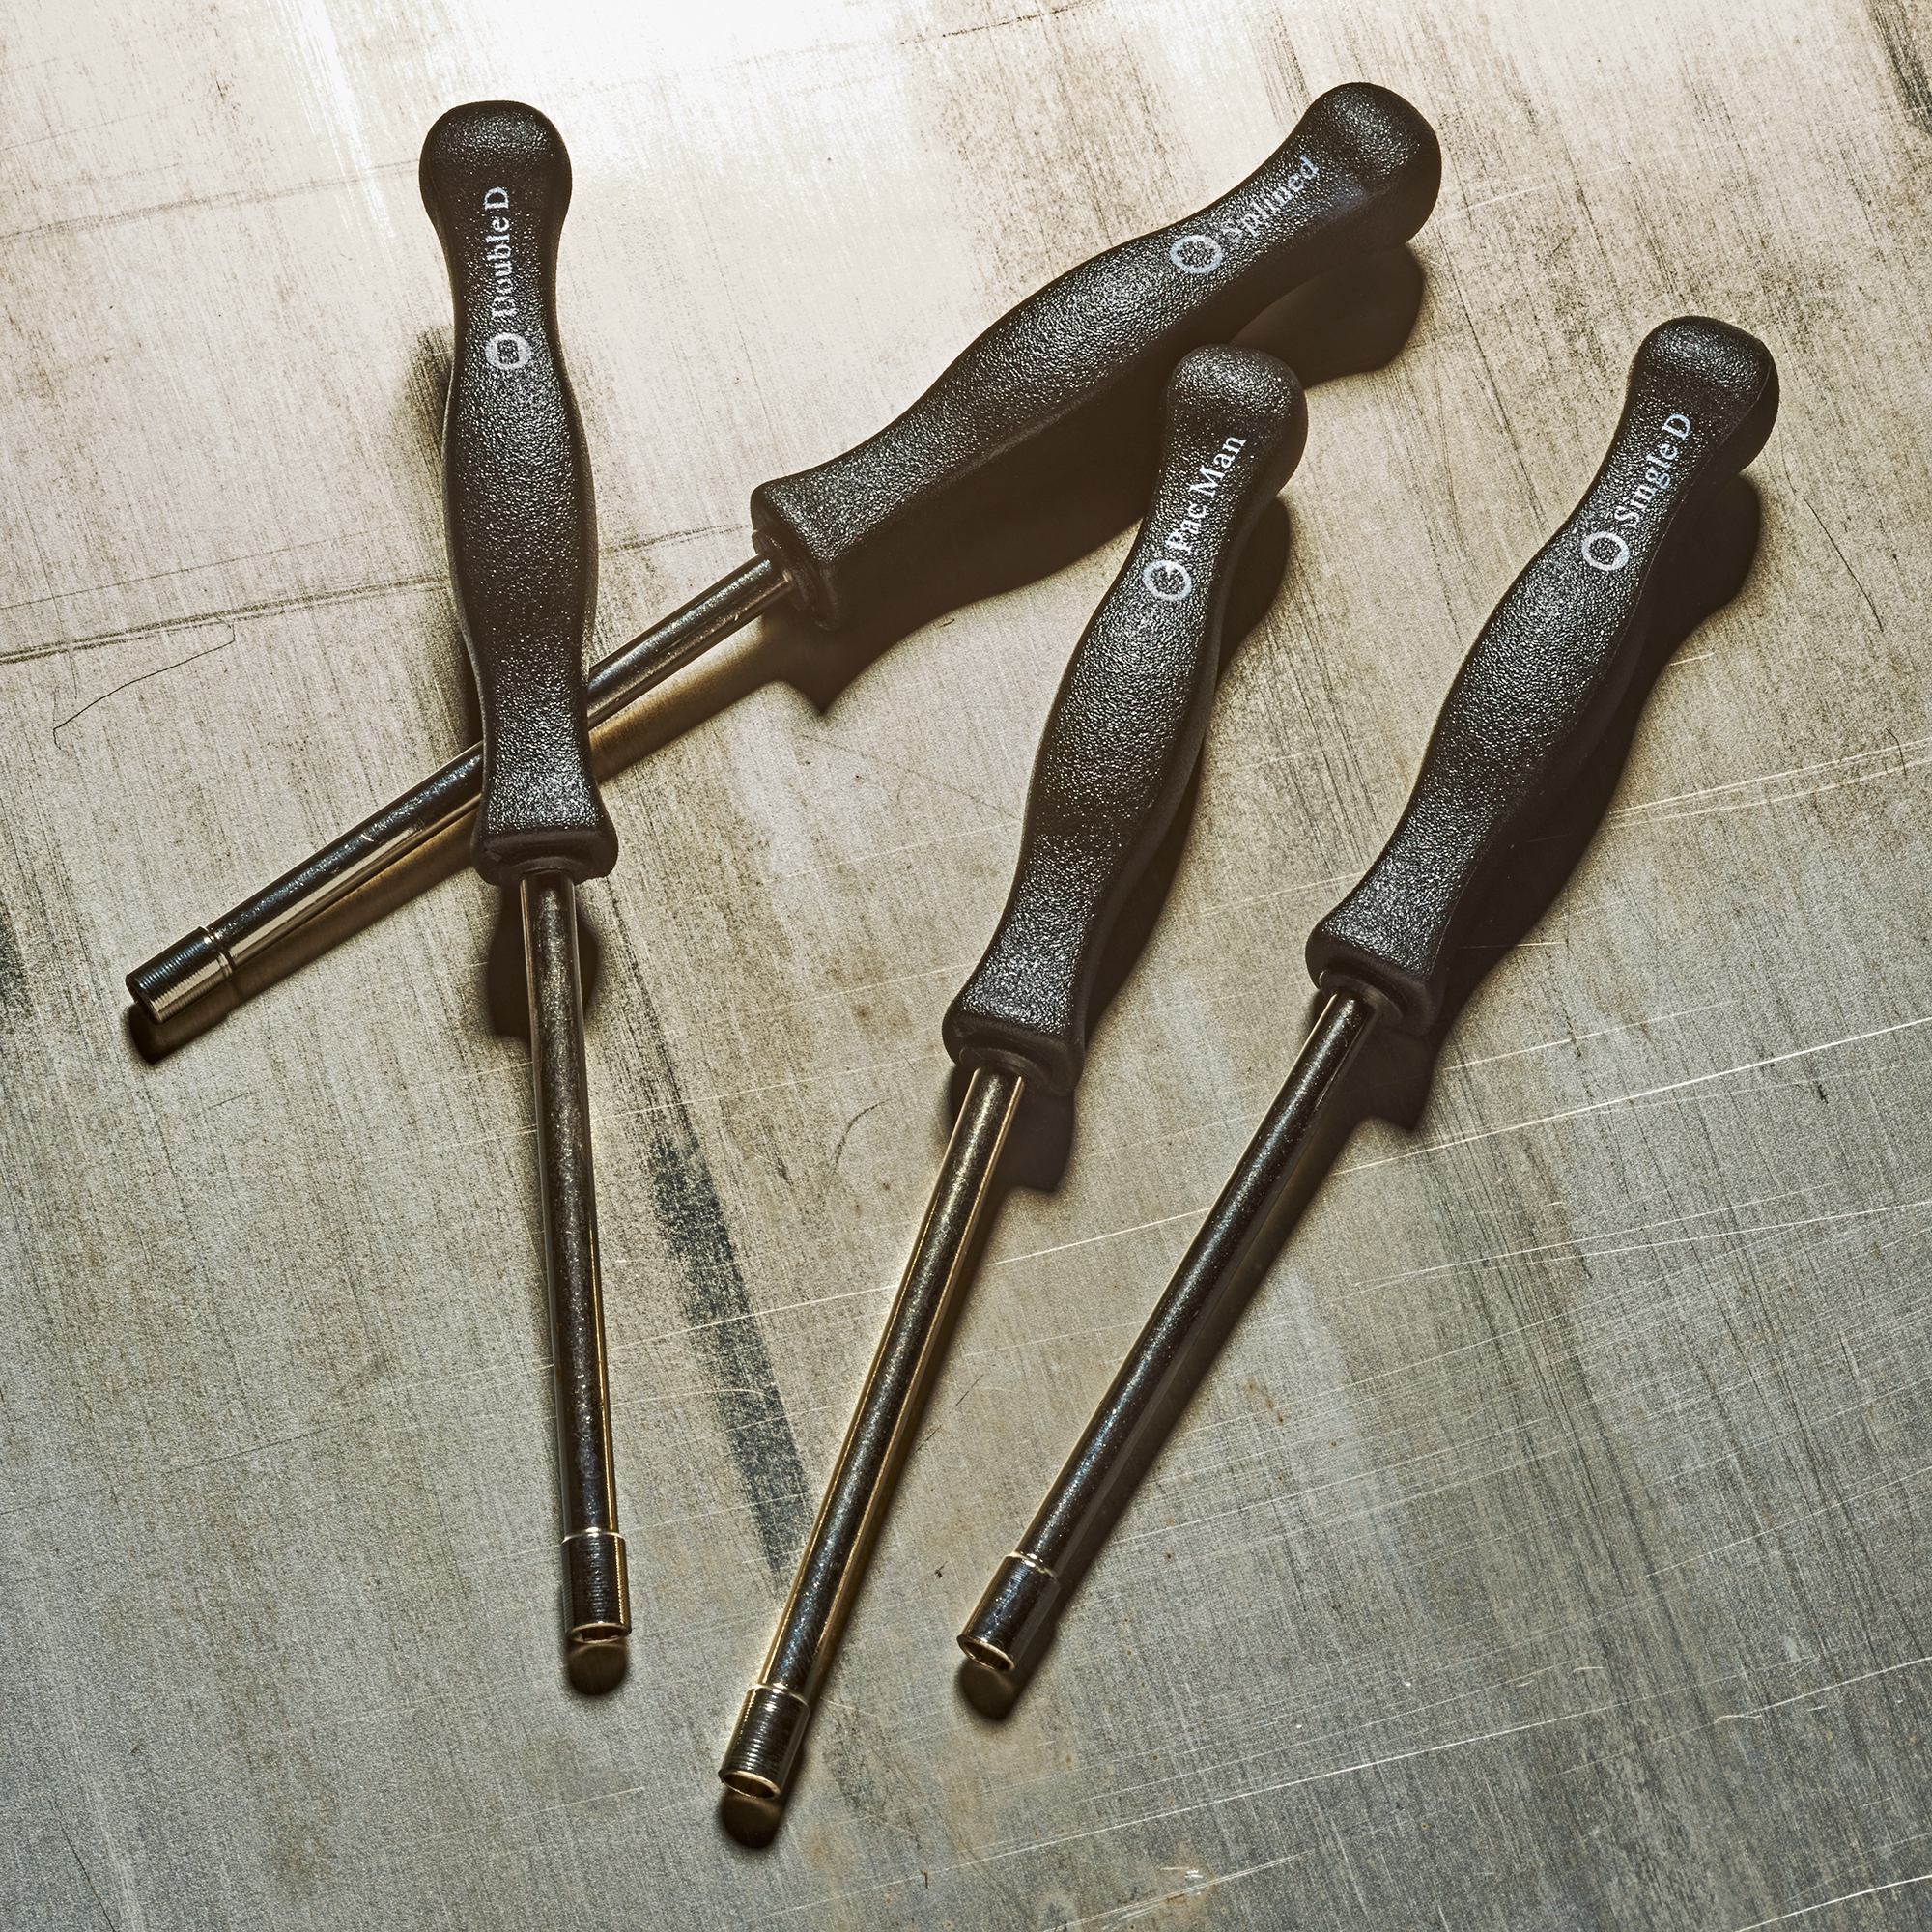 Screwdriver Set for small 2 cycle engines #rumrivertool